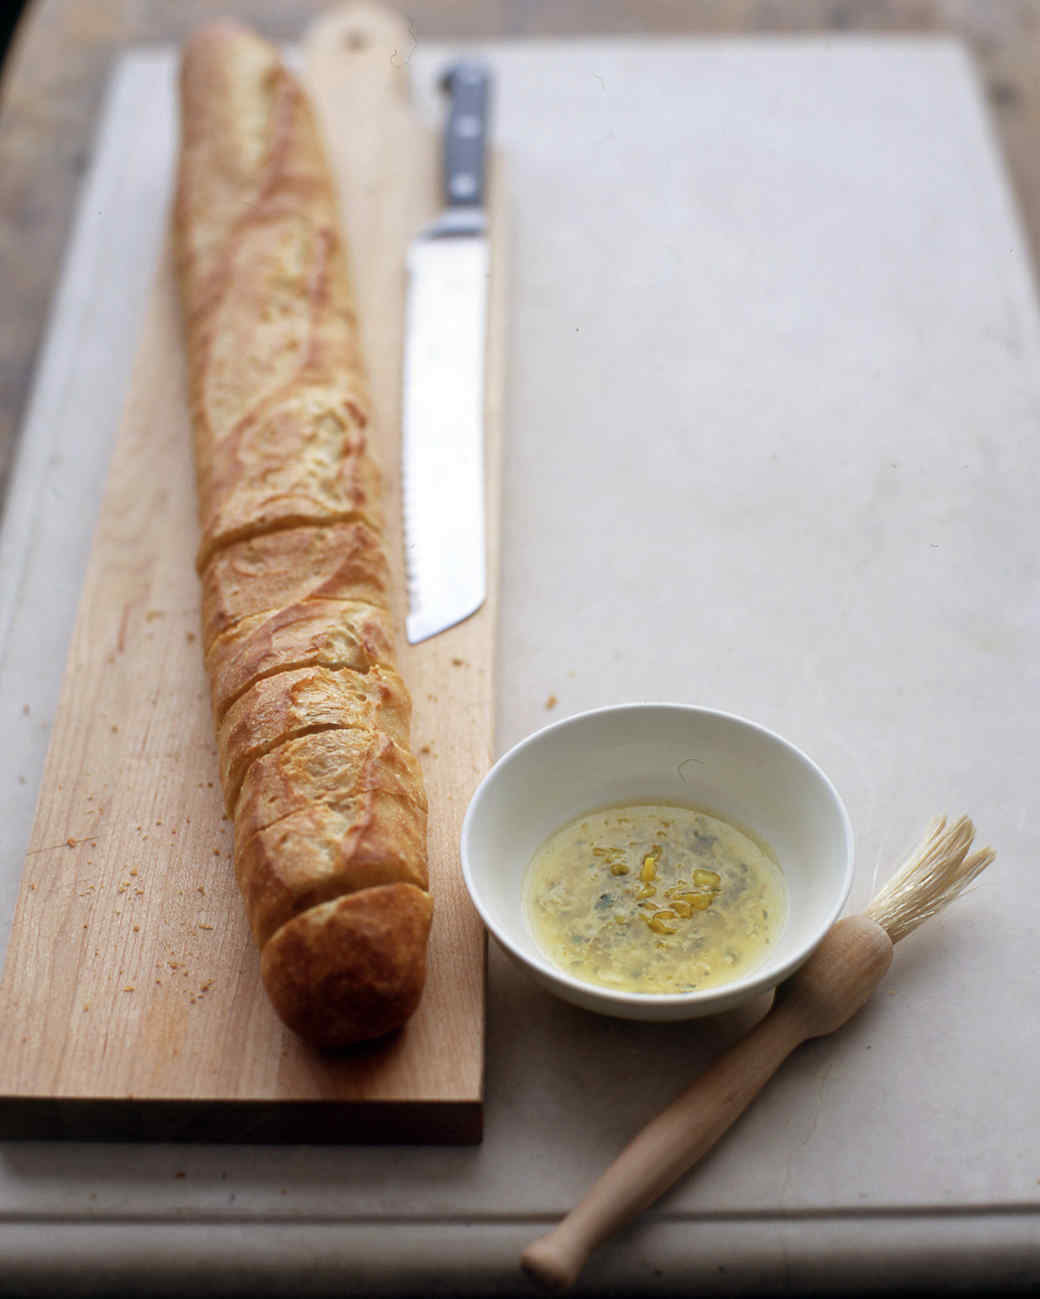 Lemon-Herb Bread